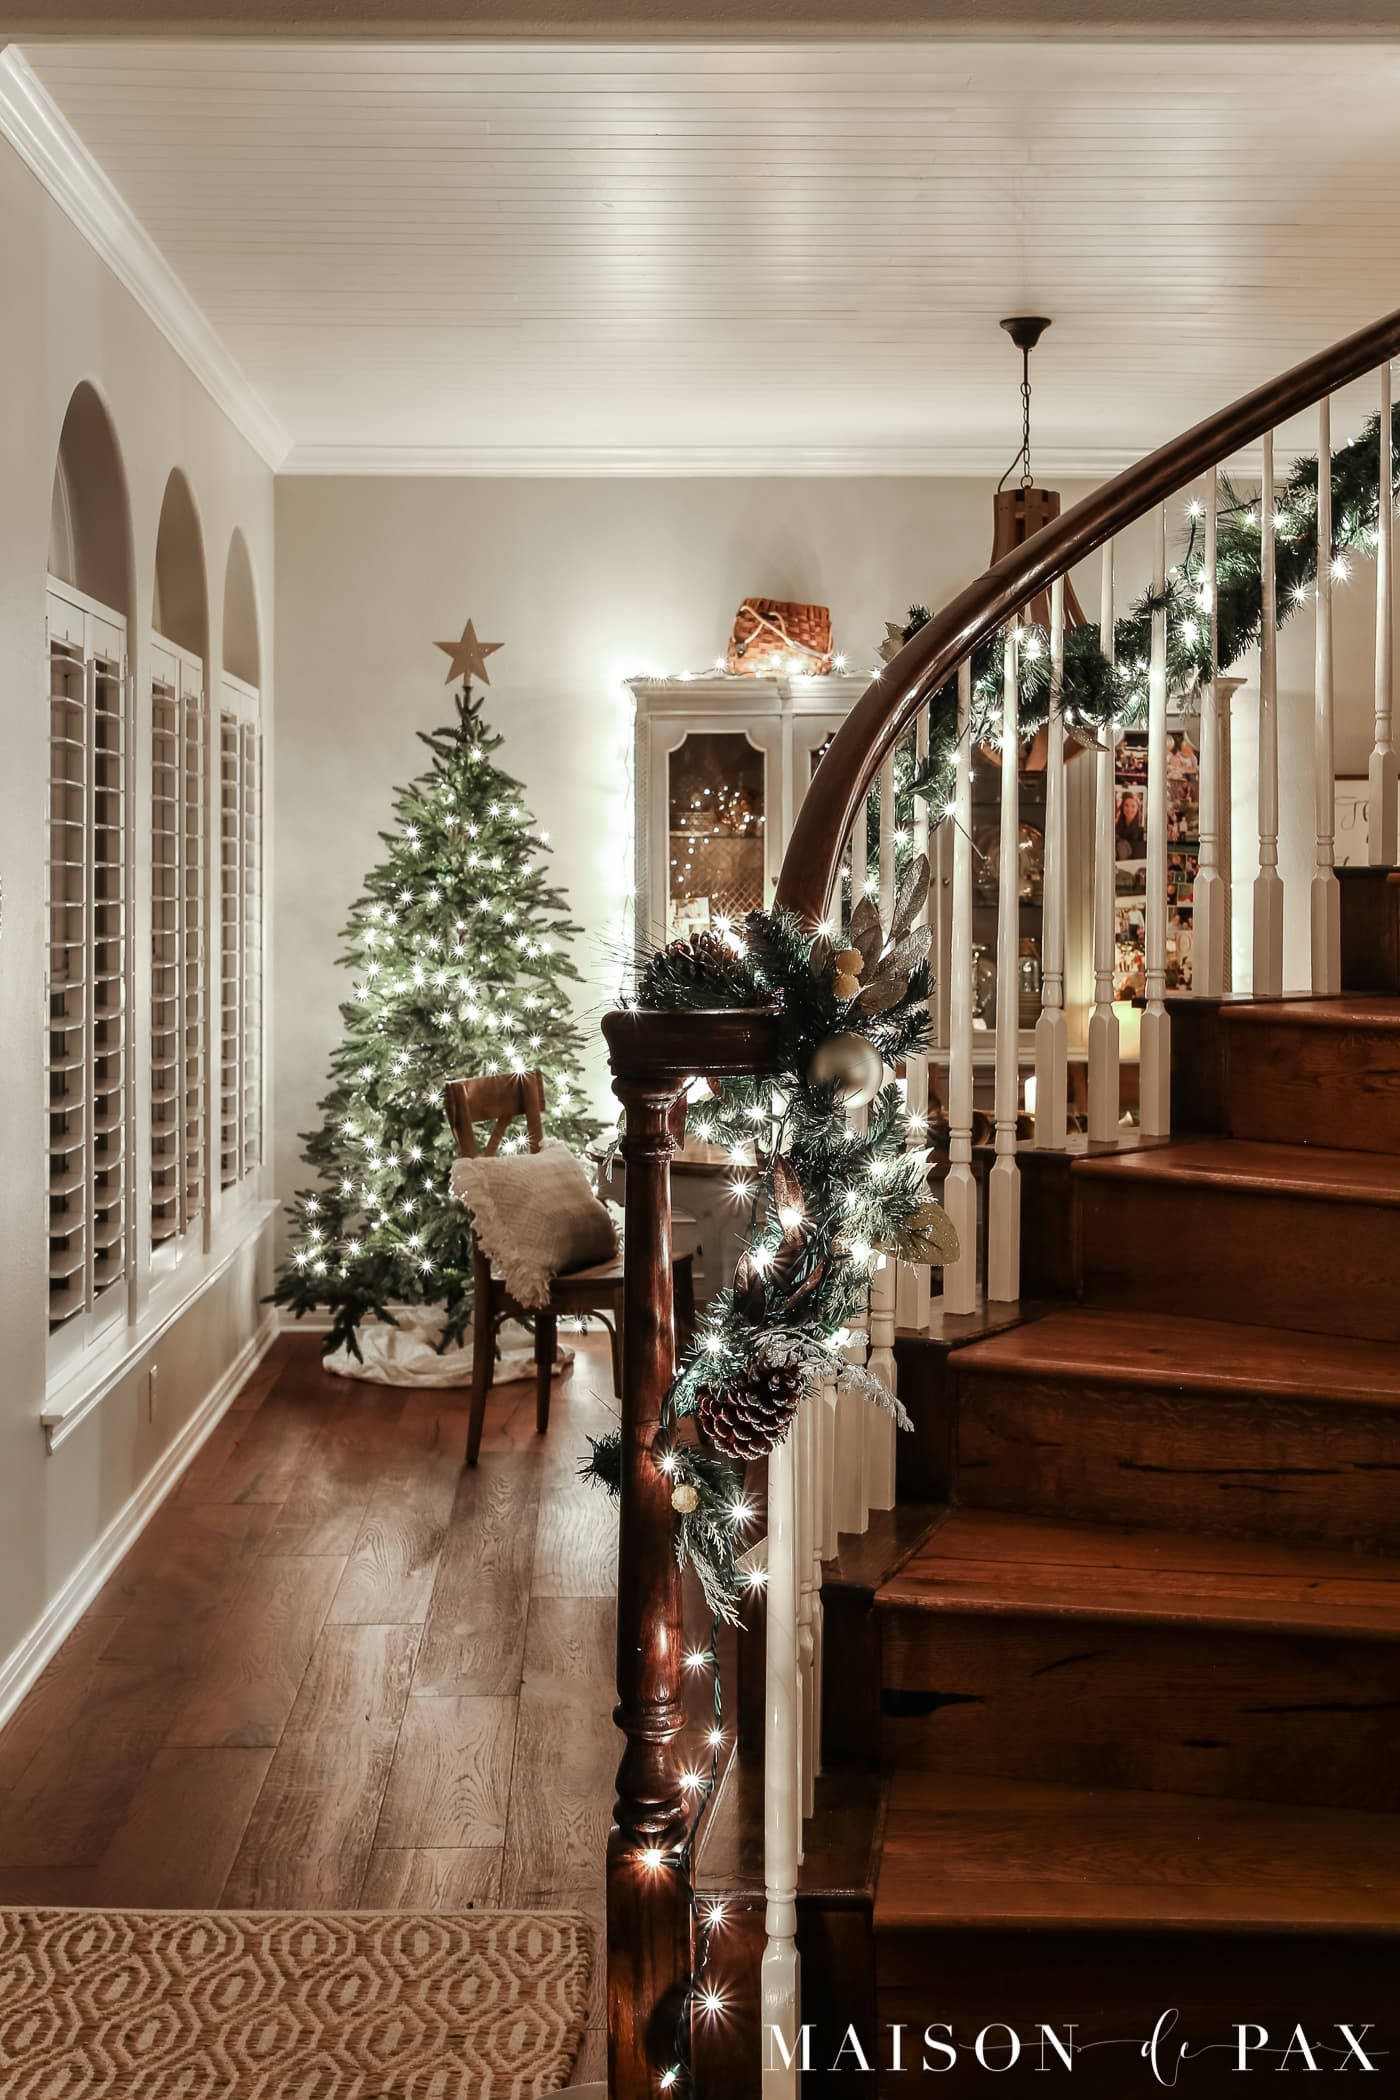 Christmas Lights At Night Holiday Home Tour Maison De Pax